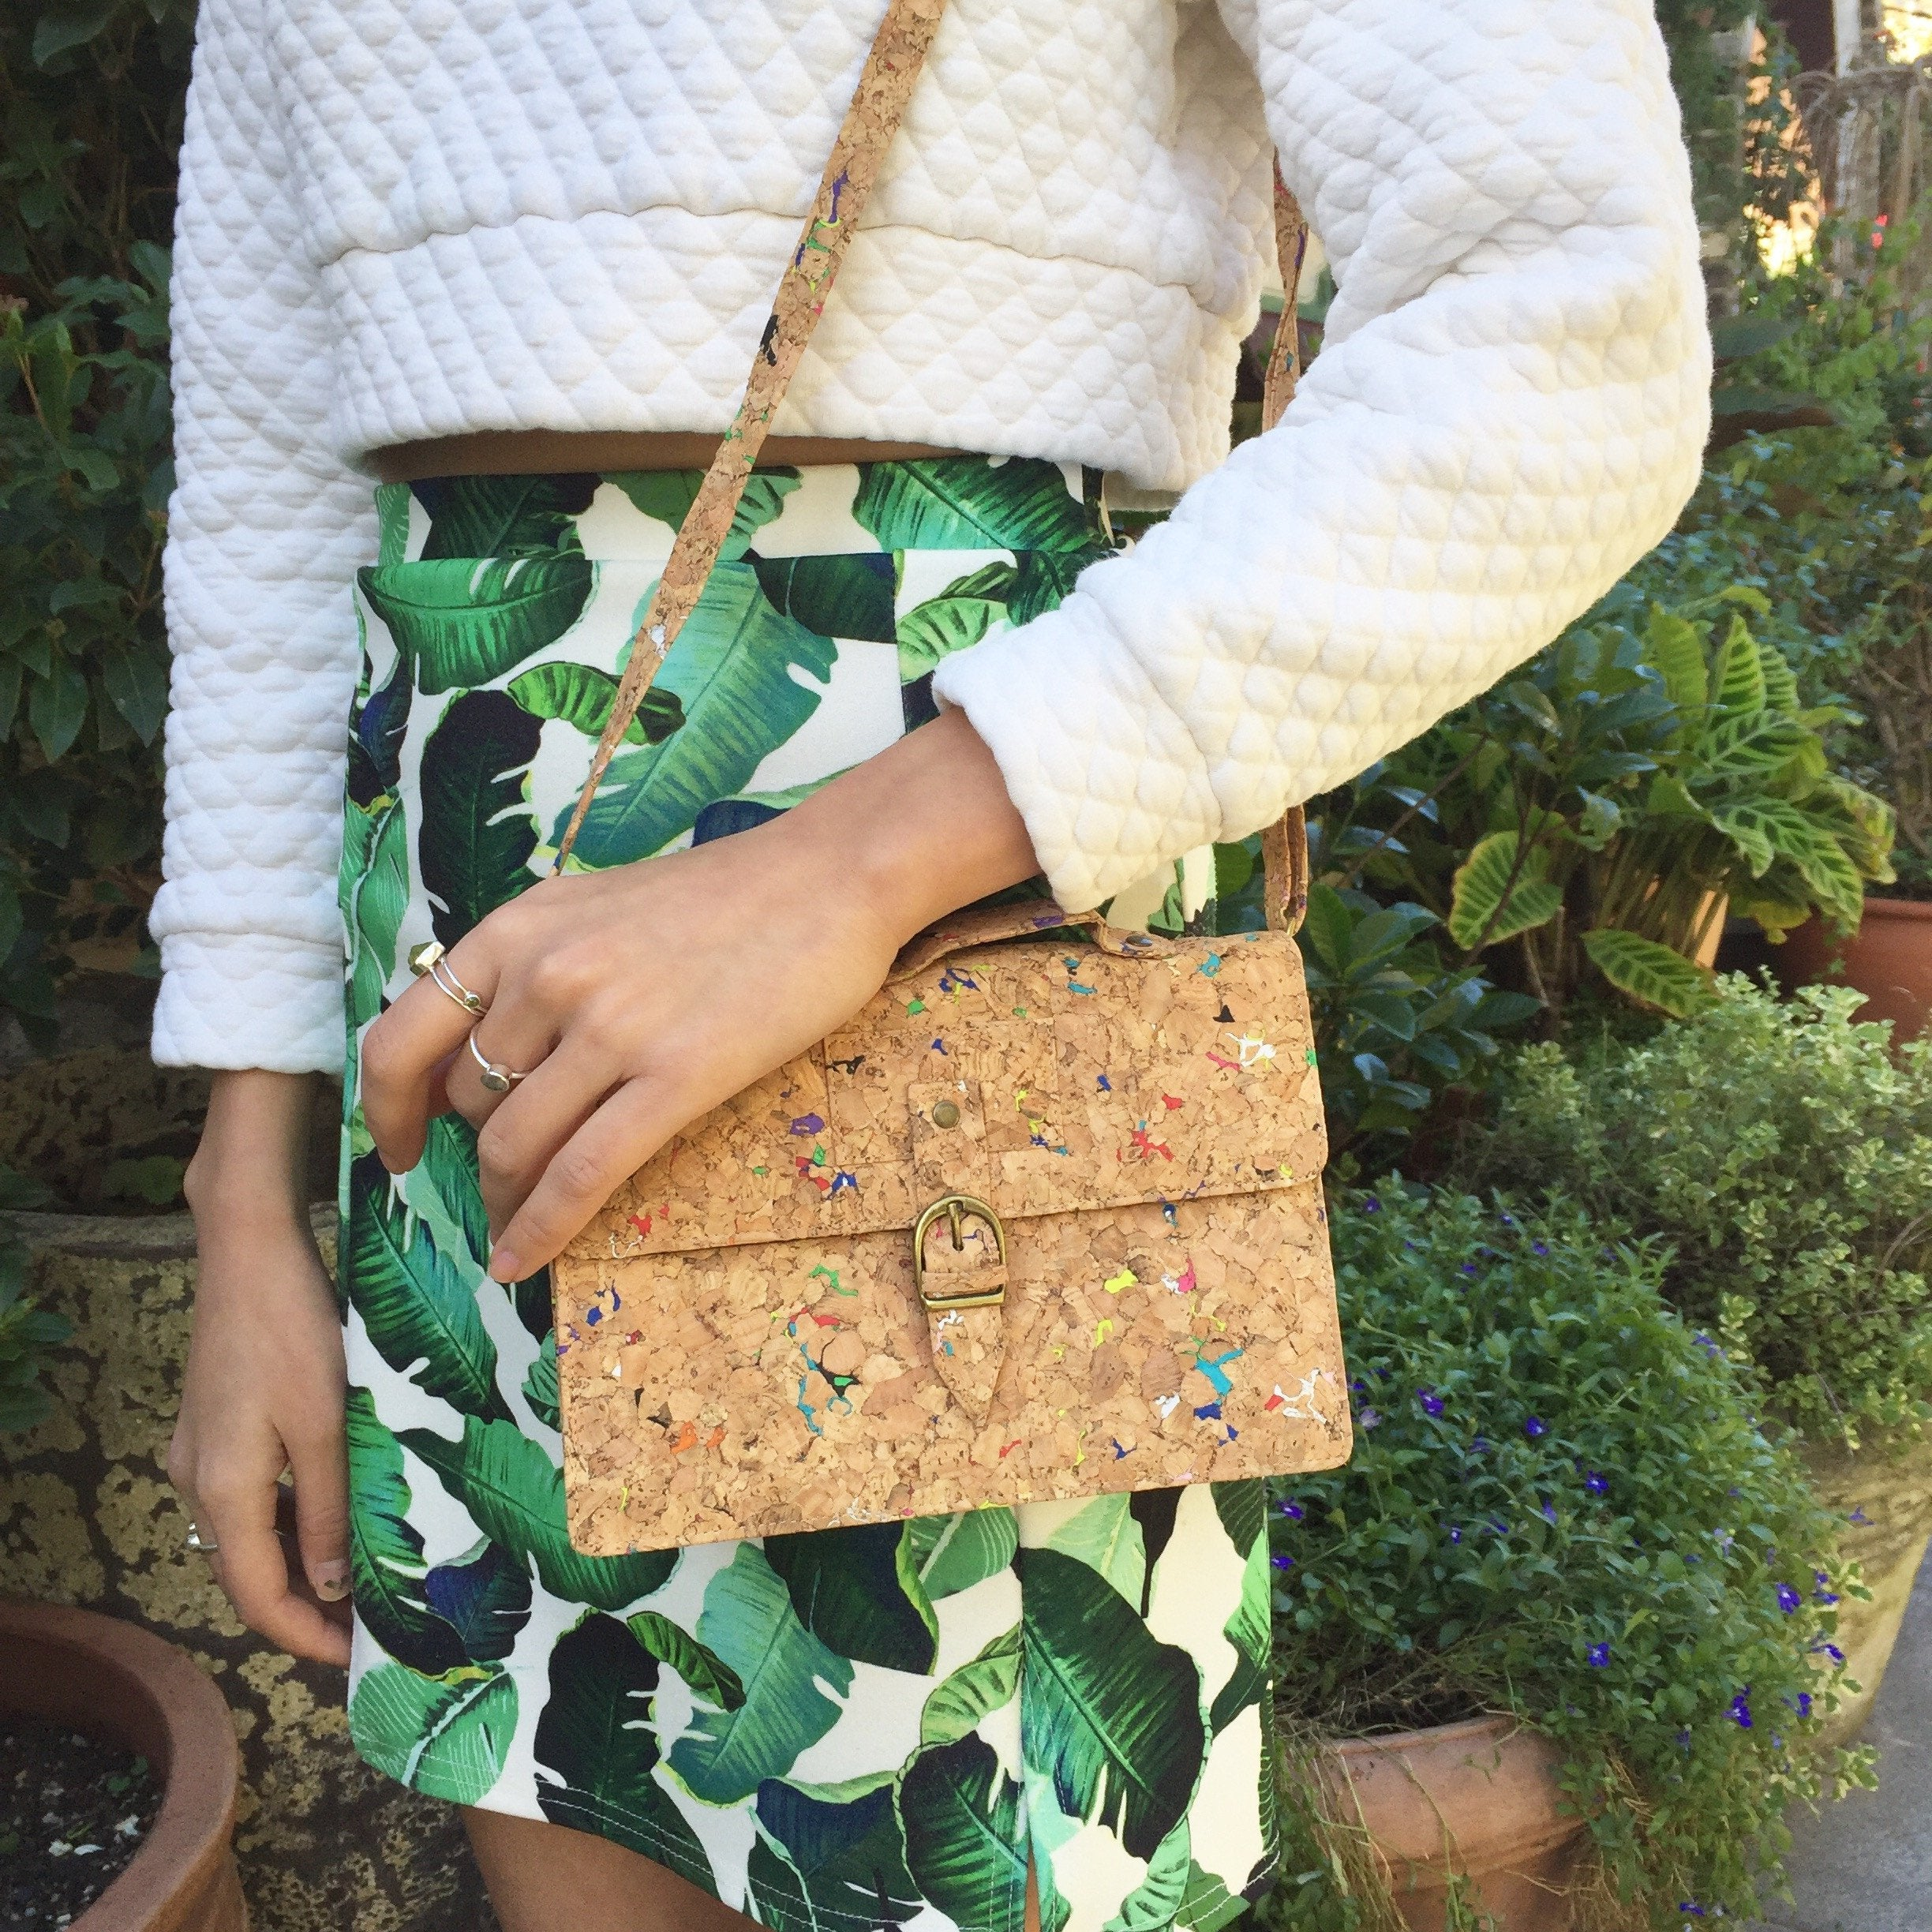 Plain Classic Kiki Cork Crossbody Clutch Bag Natural Cruelty Free Ethical Vegan Recycled